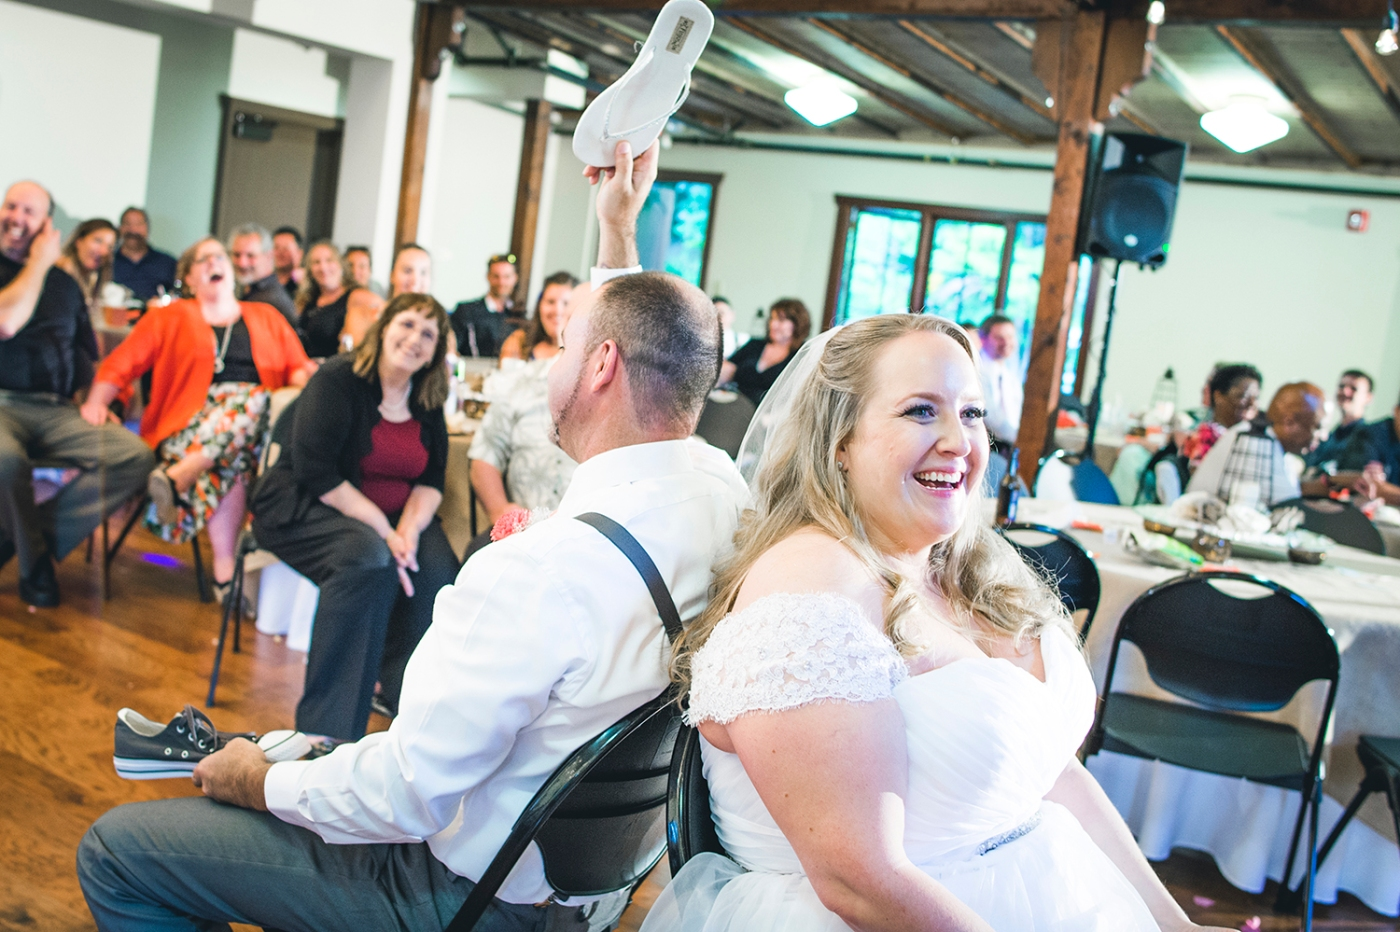 Jane_Sp_SEATTLE_photography_KaTie_and_Steve_2016_Des_Moines_Marina_Wedding__DSC_2258